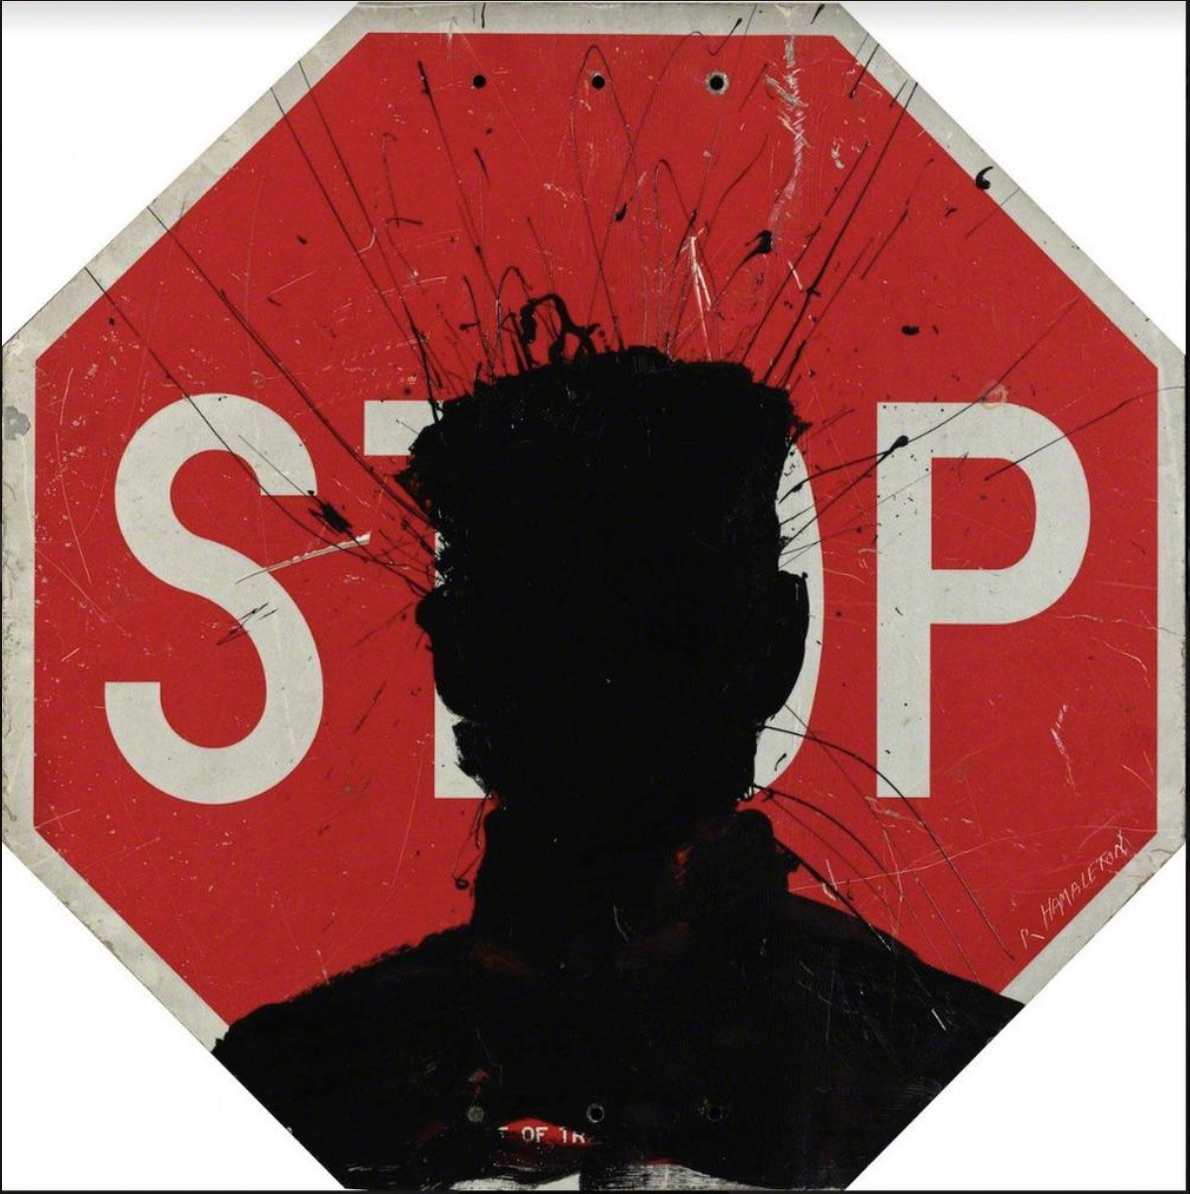 Stop Sign by Richard Hambleton